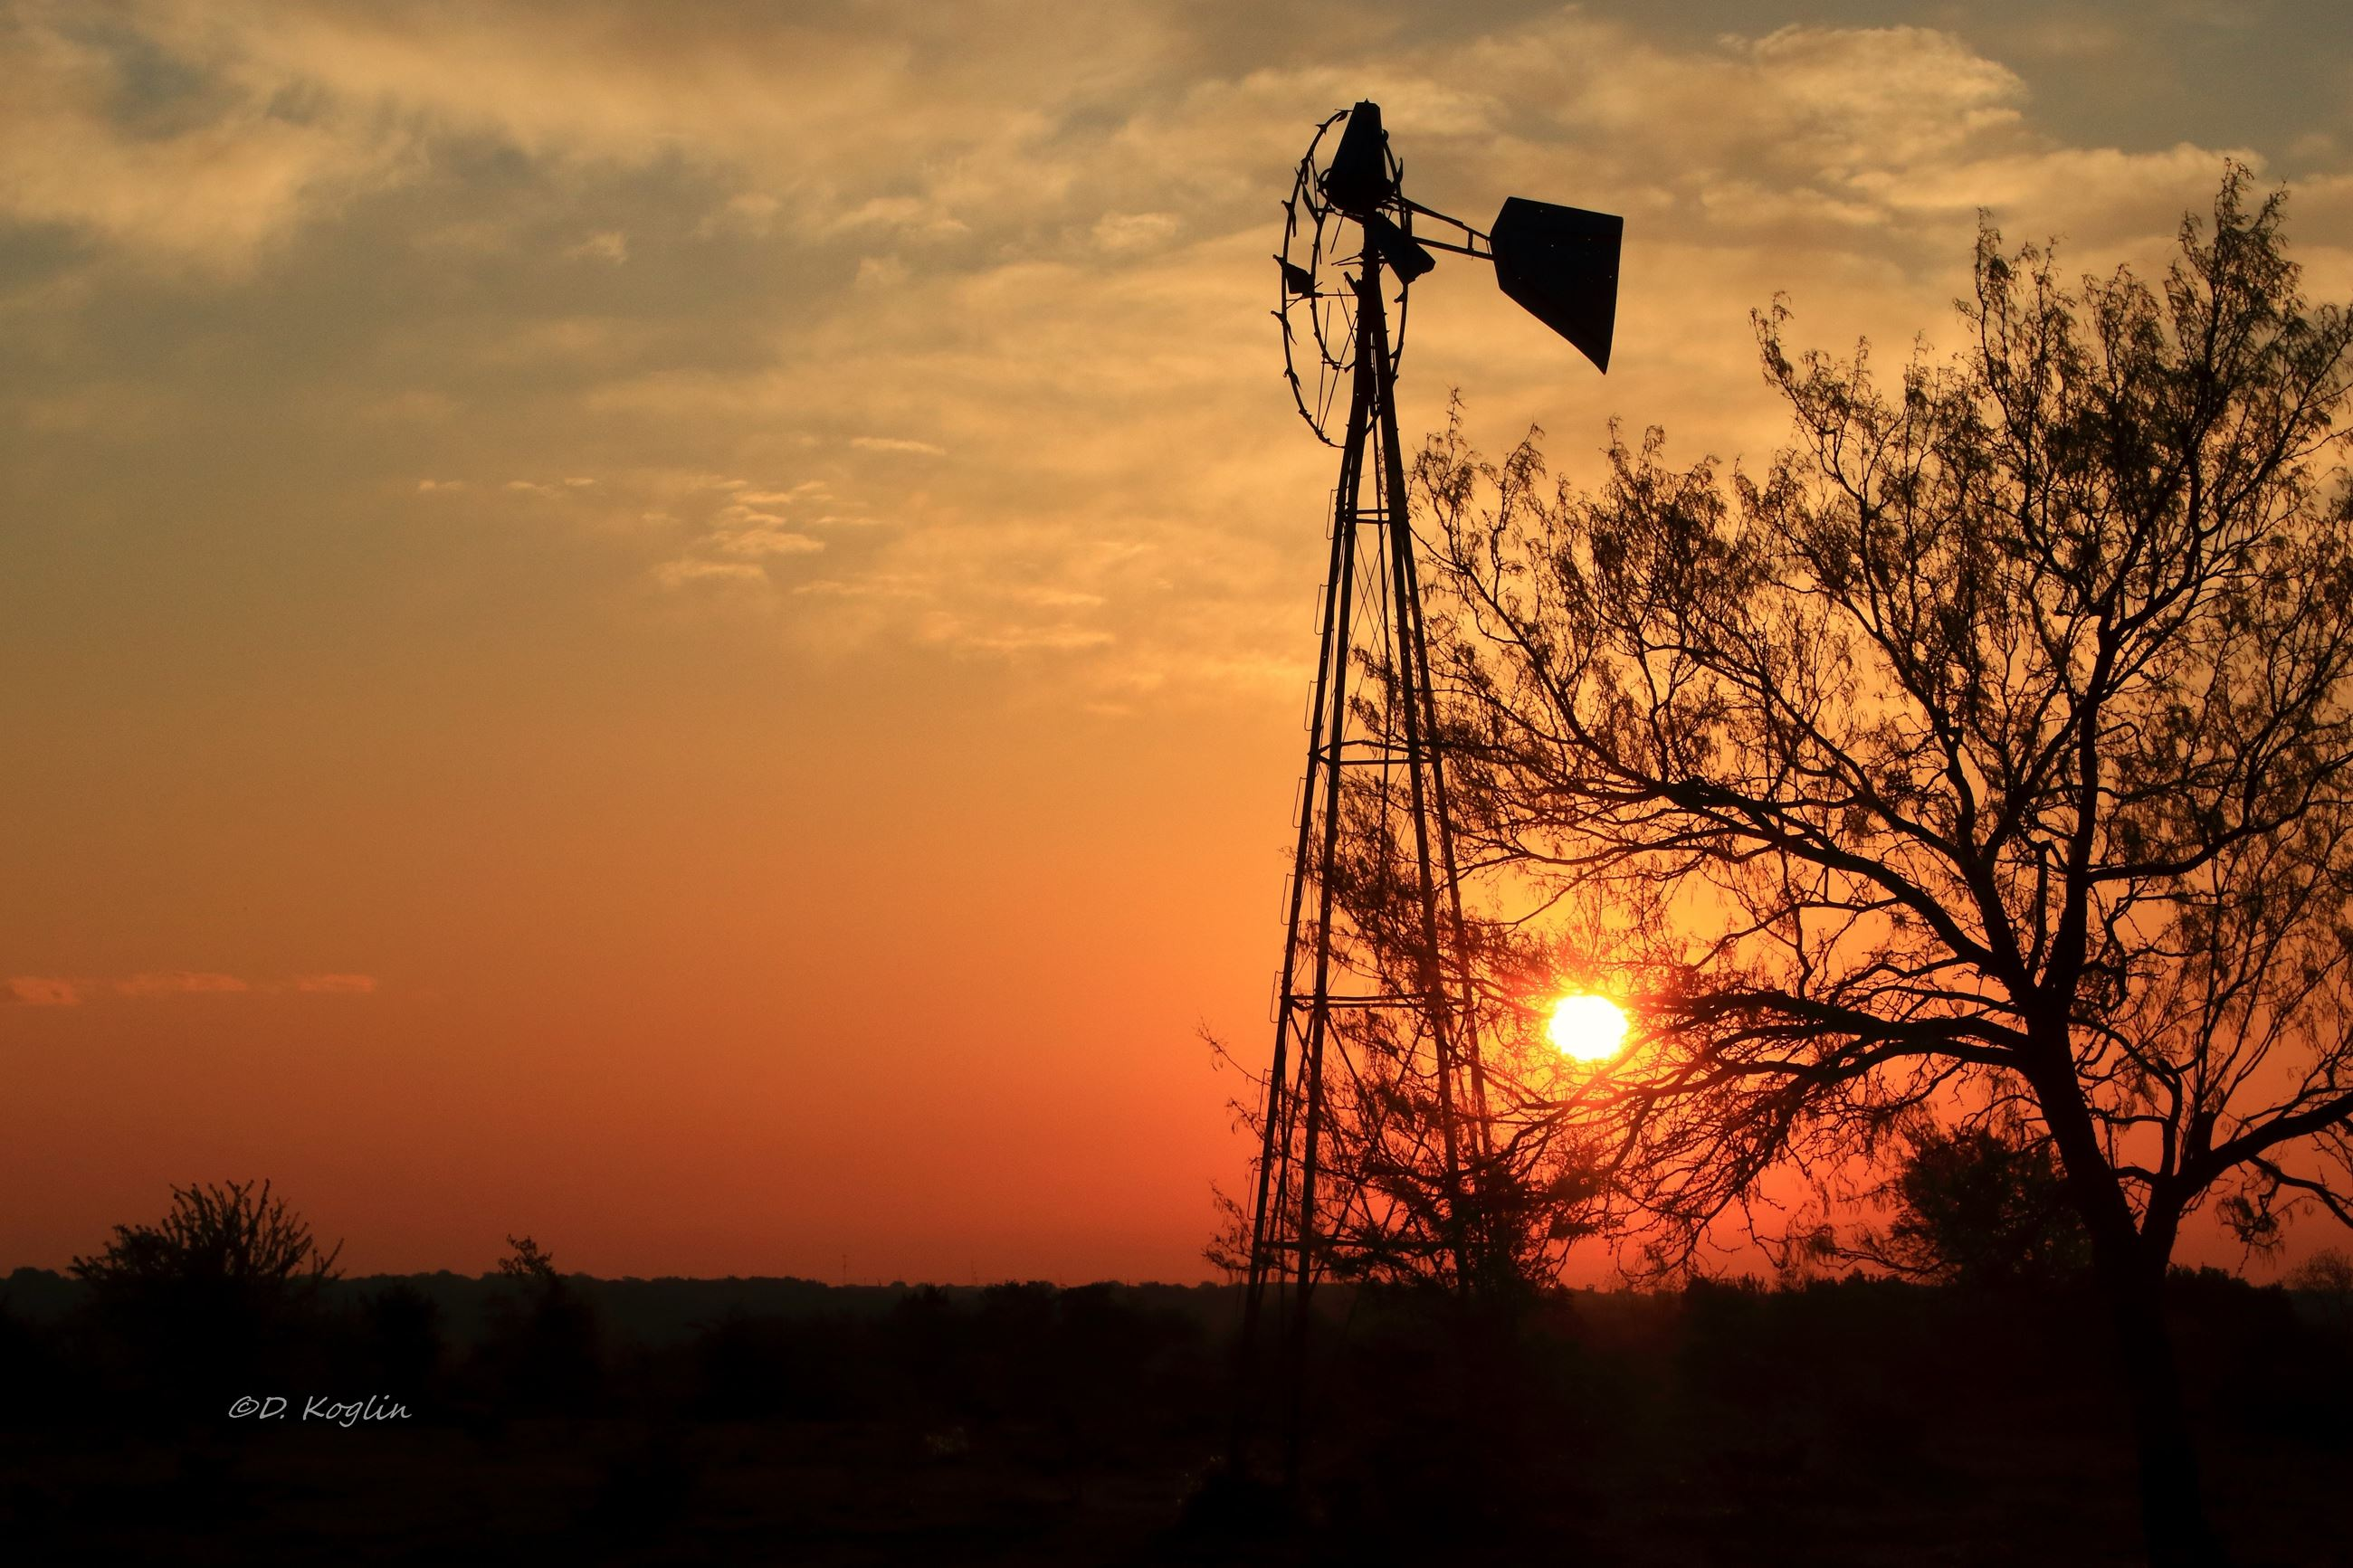 Windmill next to a tree with the sun low in the orange sky and the land is dark